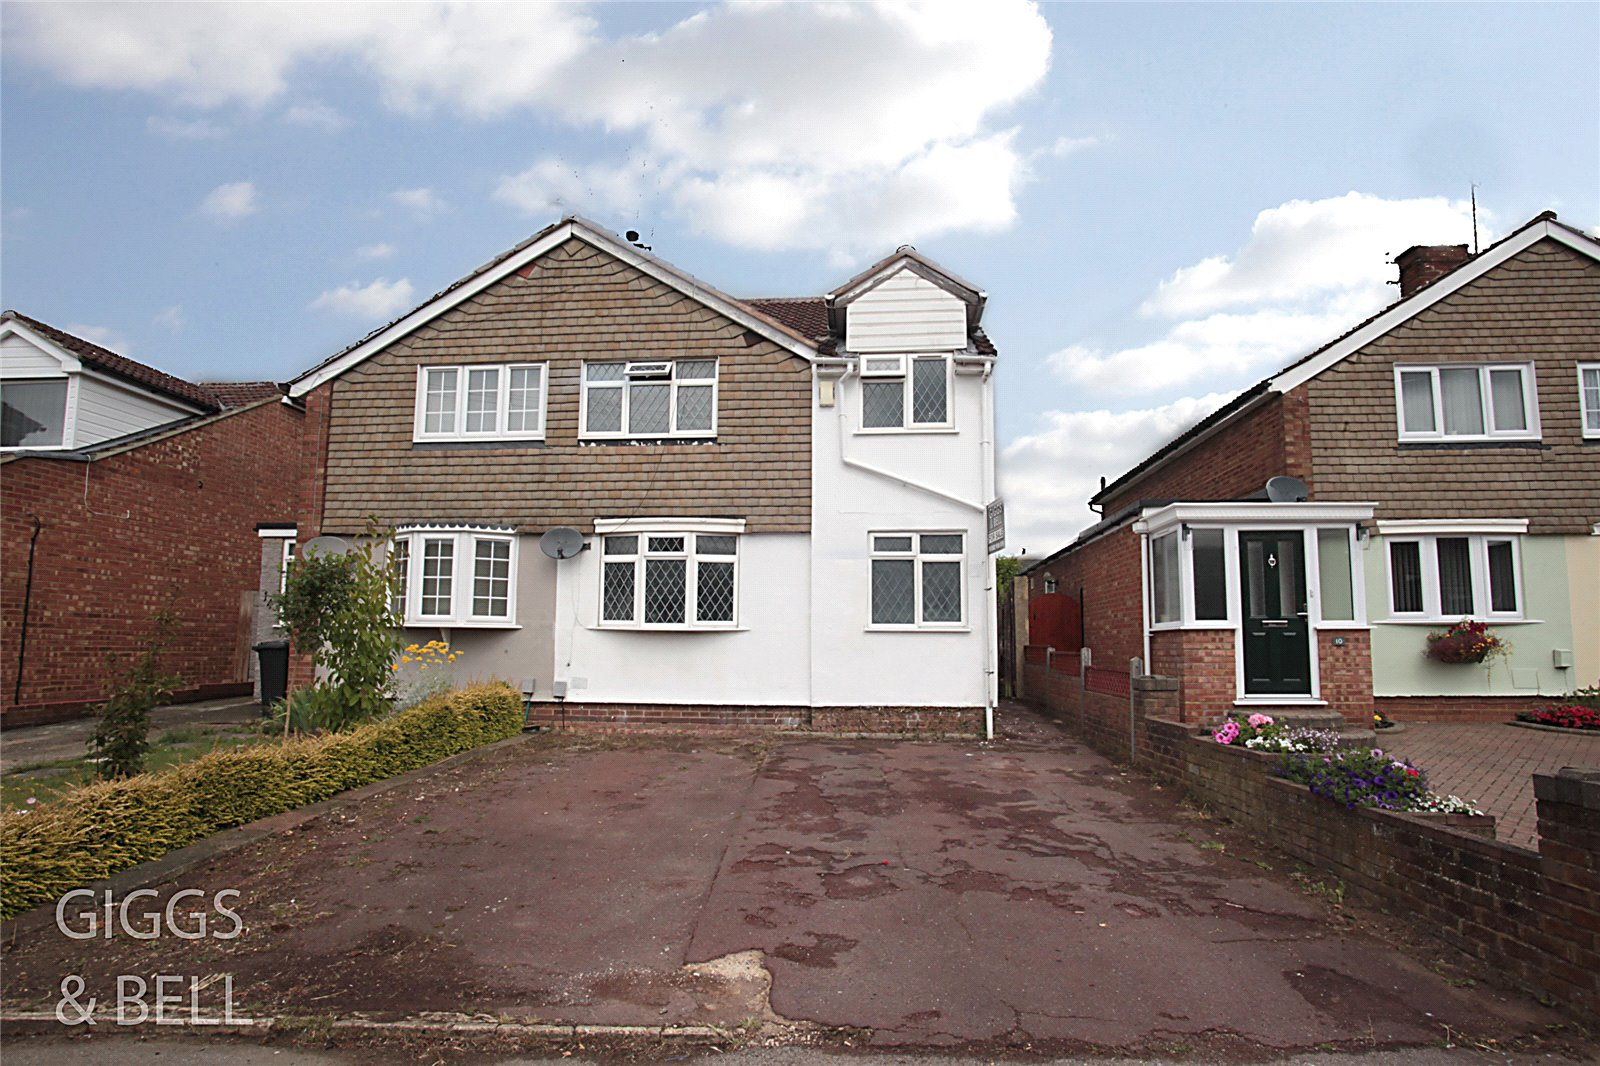 Property In Luton   Giggs & Bell